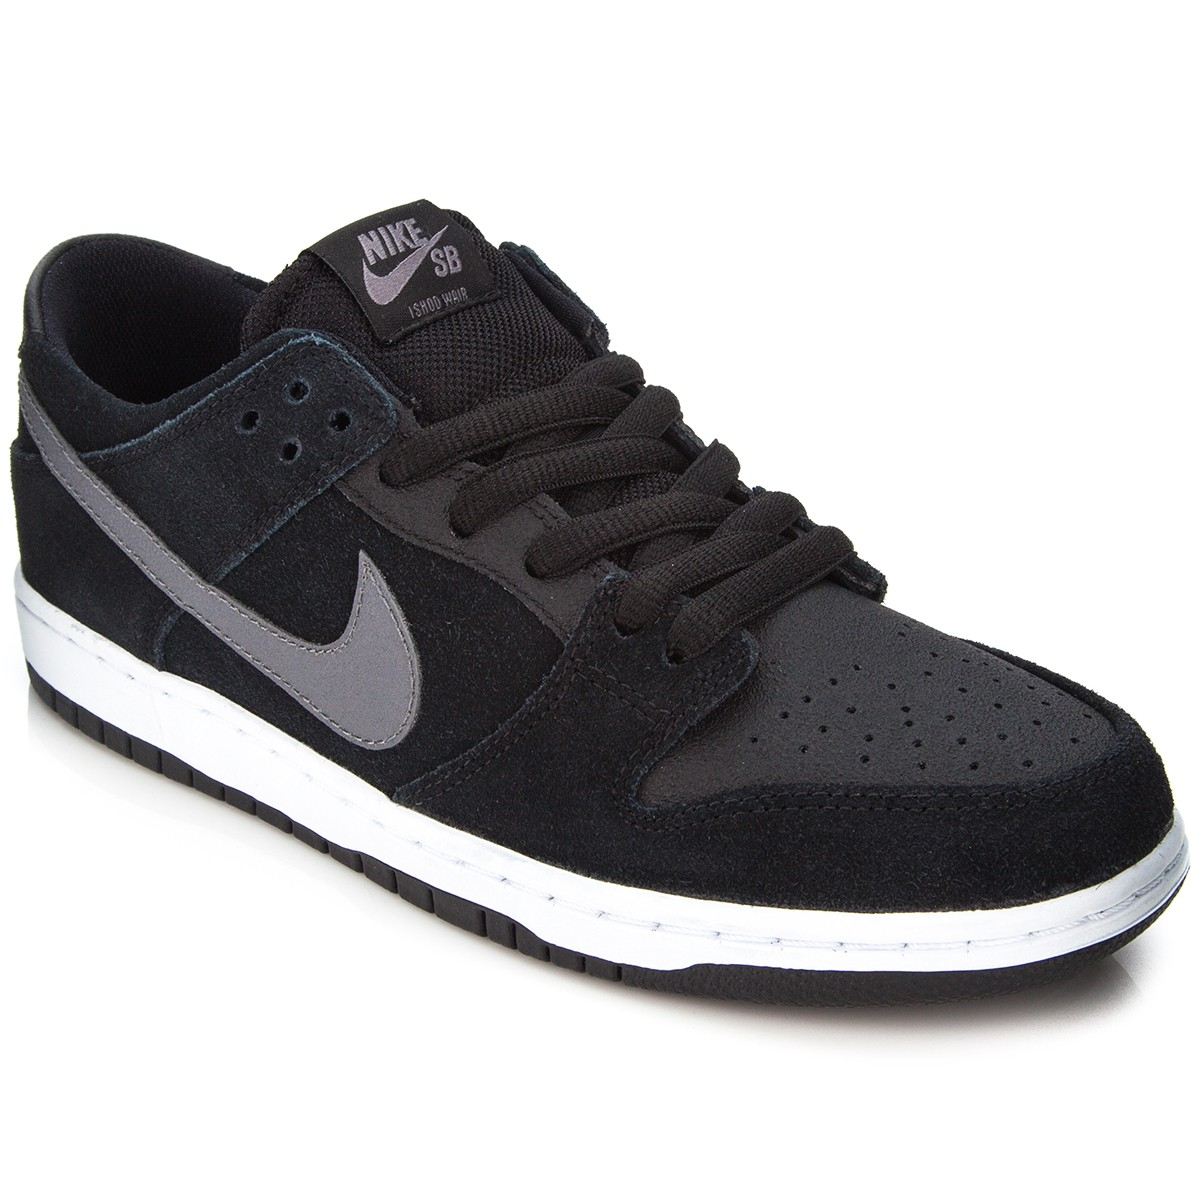 Mens Nike Dunk Low Casual Shoes